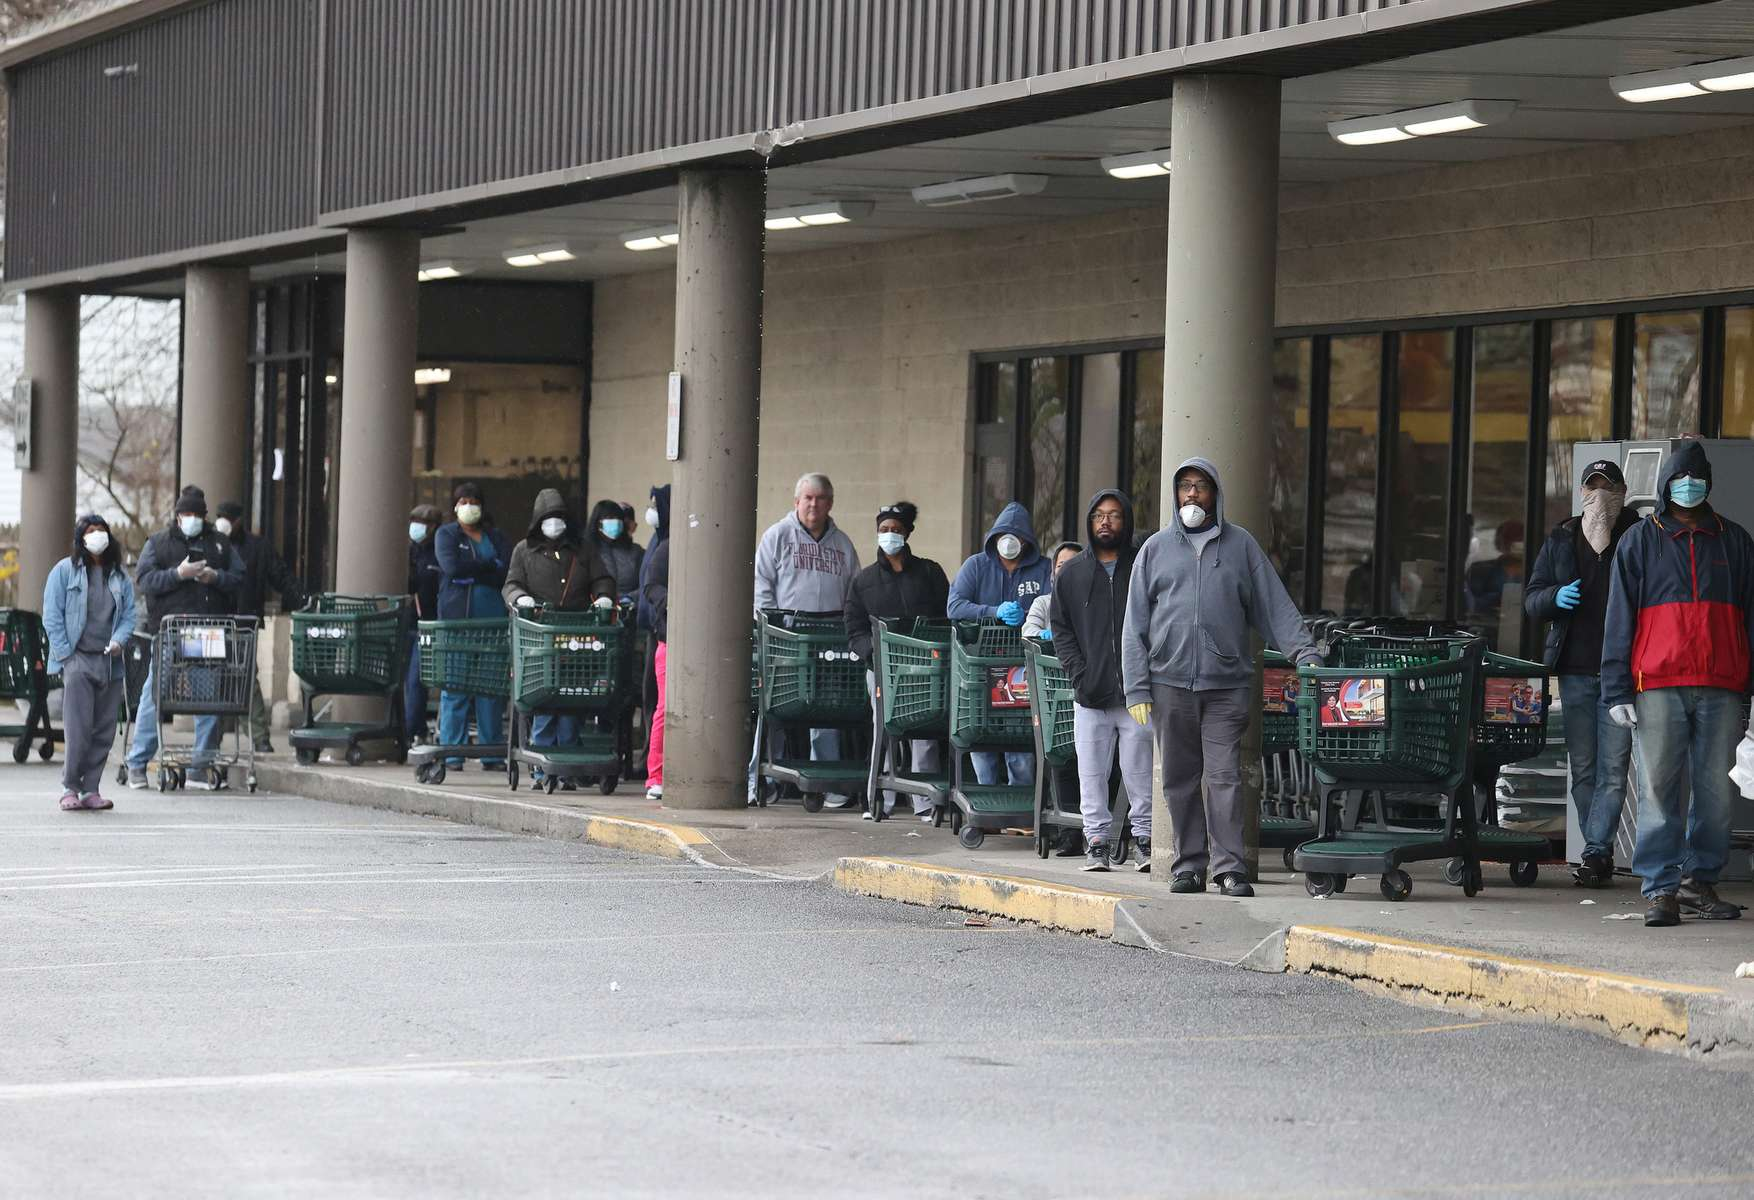 People wearing masks wait to enter Shop Rite on April 03, 2020 in Uniondale, New York.  Due to the coronavirus (COVID-19) pandemic the supermarket has  implemented social distancing while shopping in the store by letting only a certain number of people enter at a time.  The World Health Organization declared coronavirus (COVID-19) a global pandemic on March 11th.